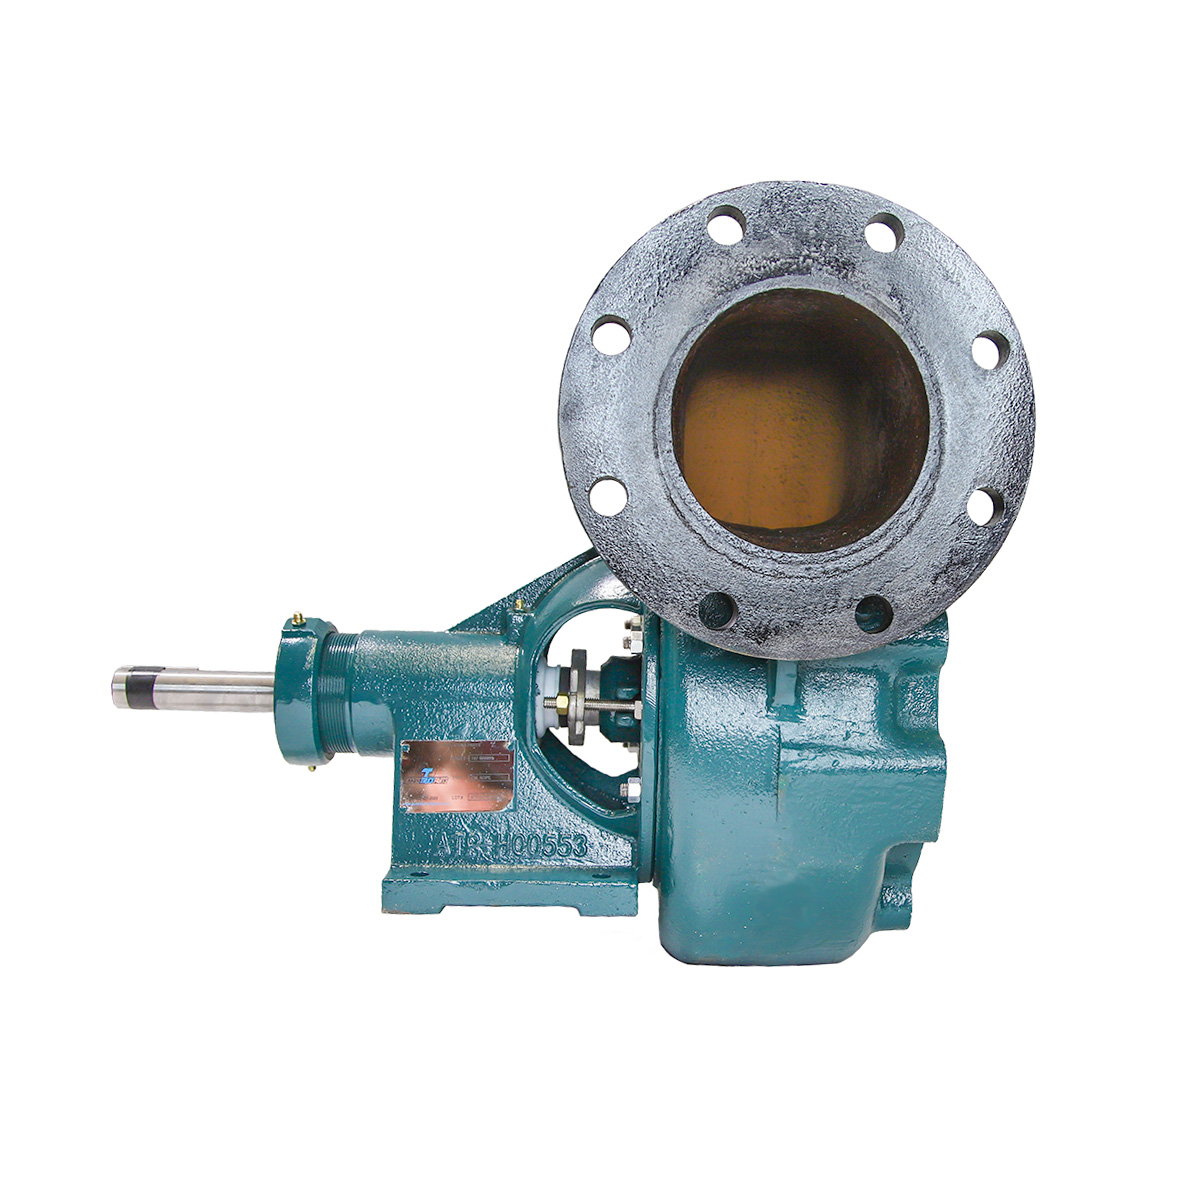 B6Z Rope Seal Pump (CW Flange)